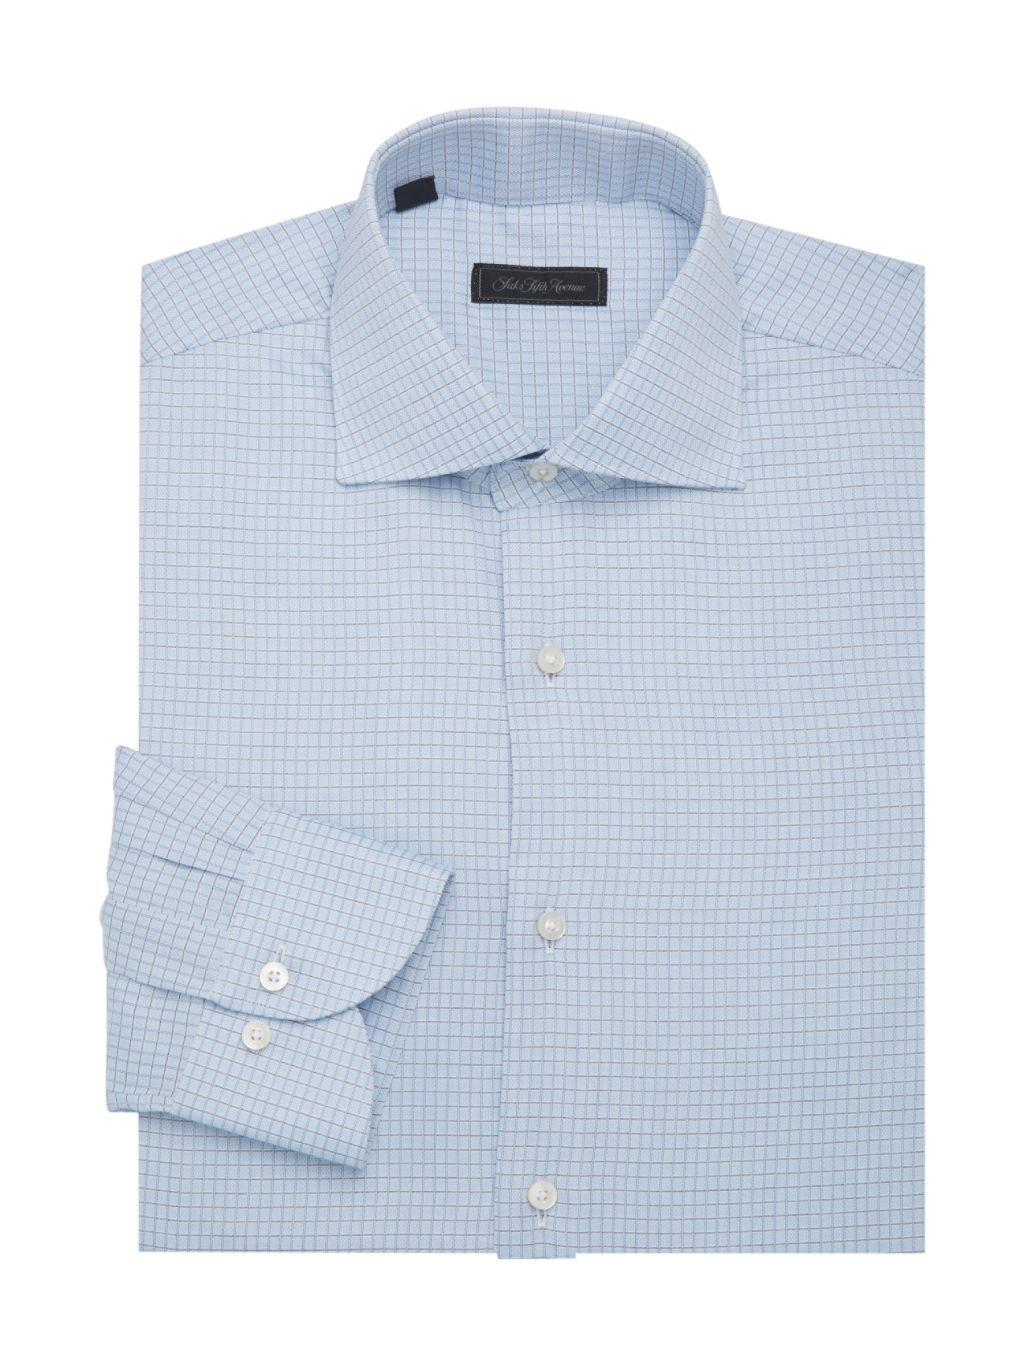 Saks Fifth Avenue Collection COLLECTION Travel Cotton Dress Shirt